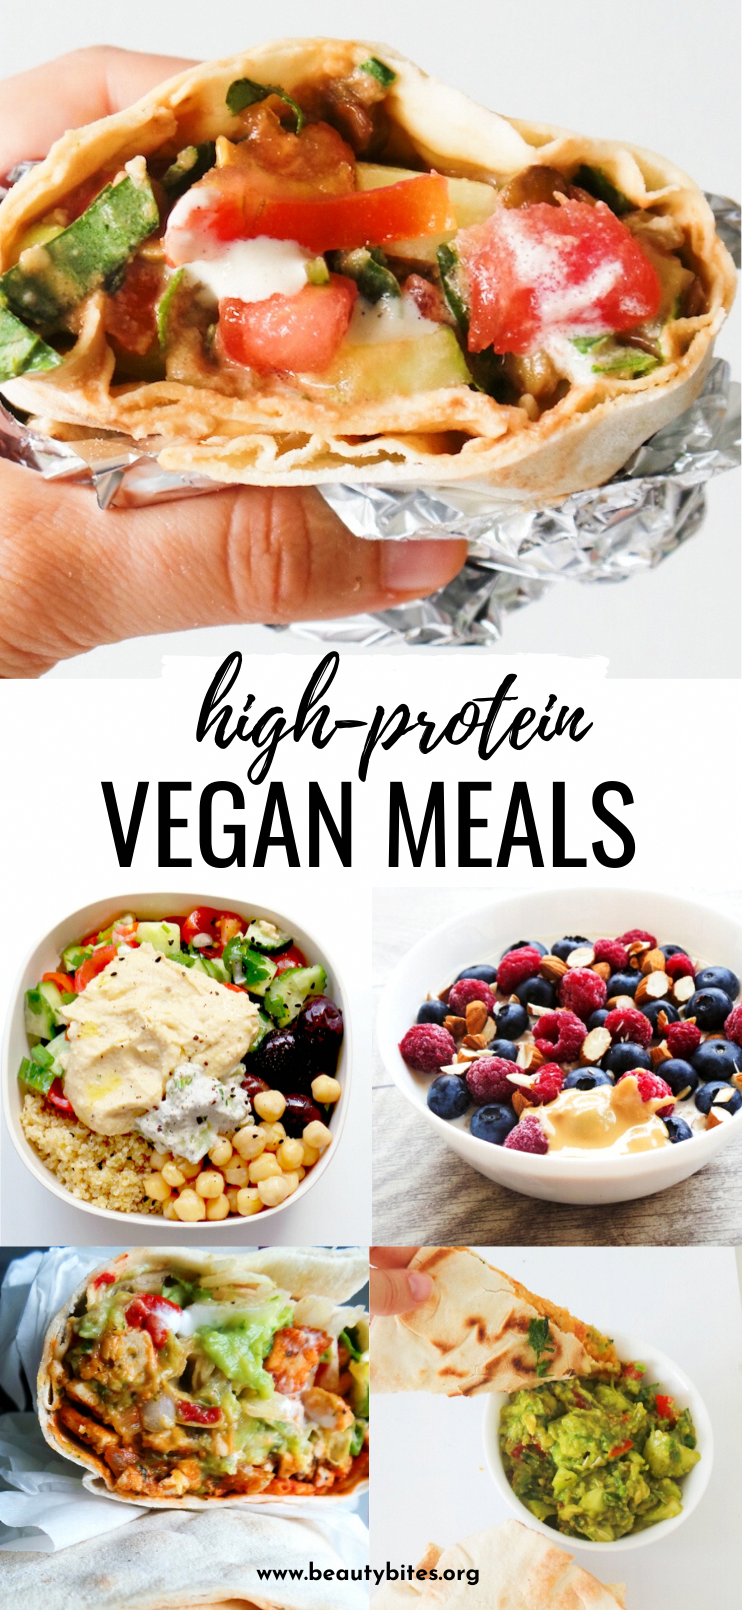 15 Easy High-Protein Vegan Recipes - Beauty Bites